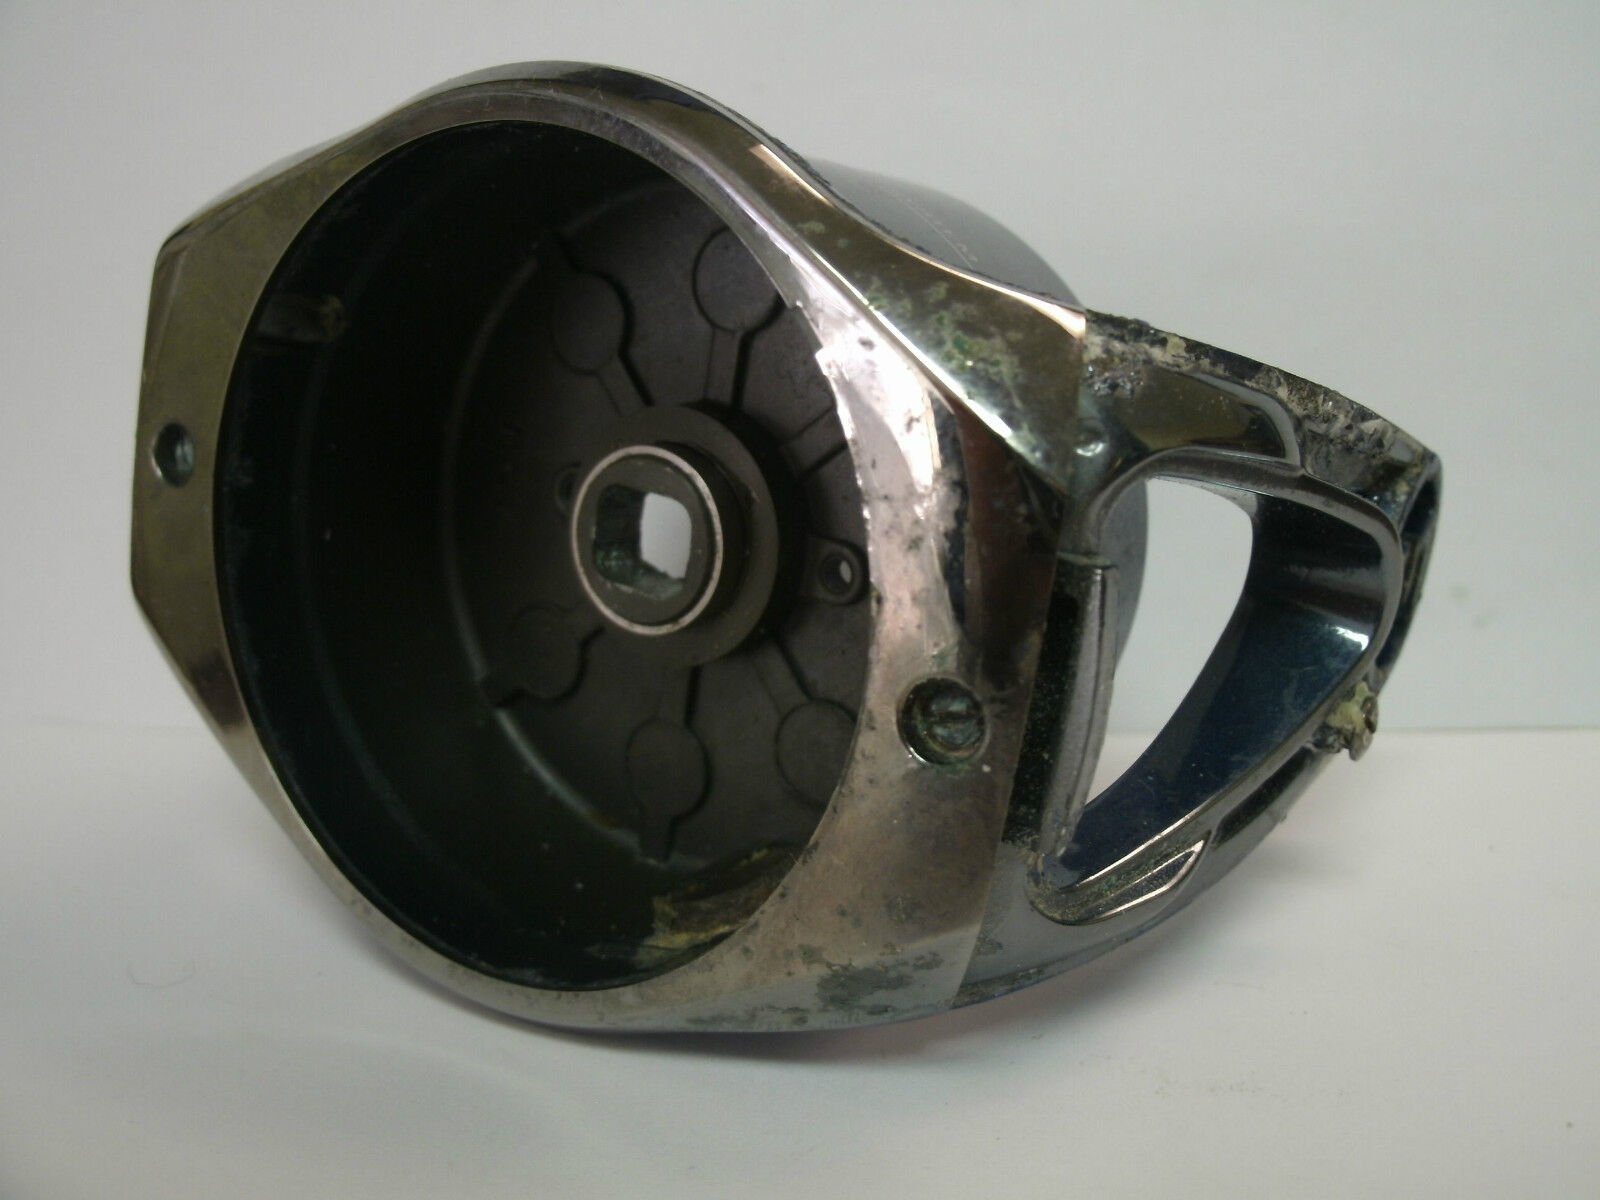 USED SHIMANO REEL PART Stella Spinning 20000 FA Spinning Stella Reel - Rotor a8e92c